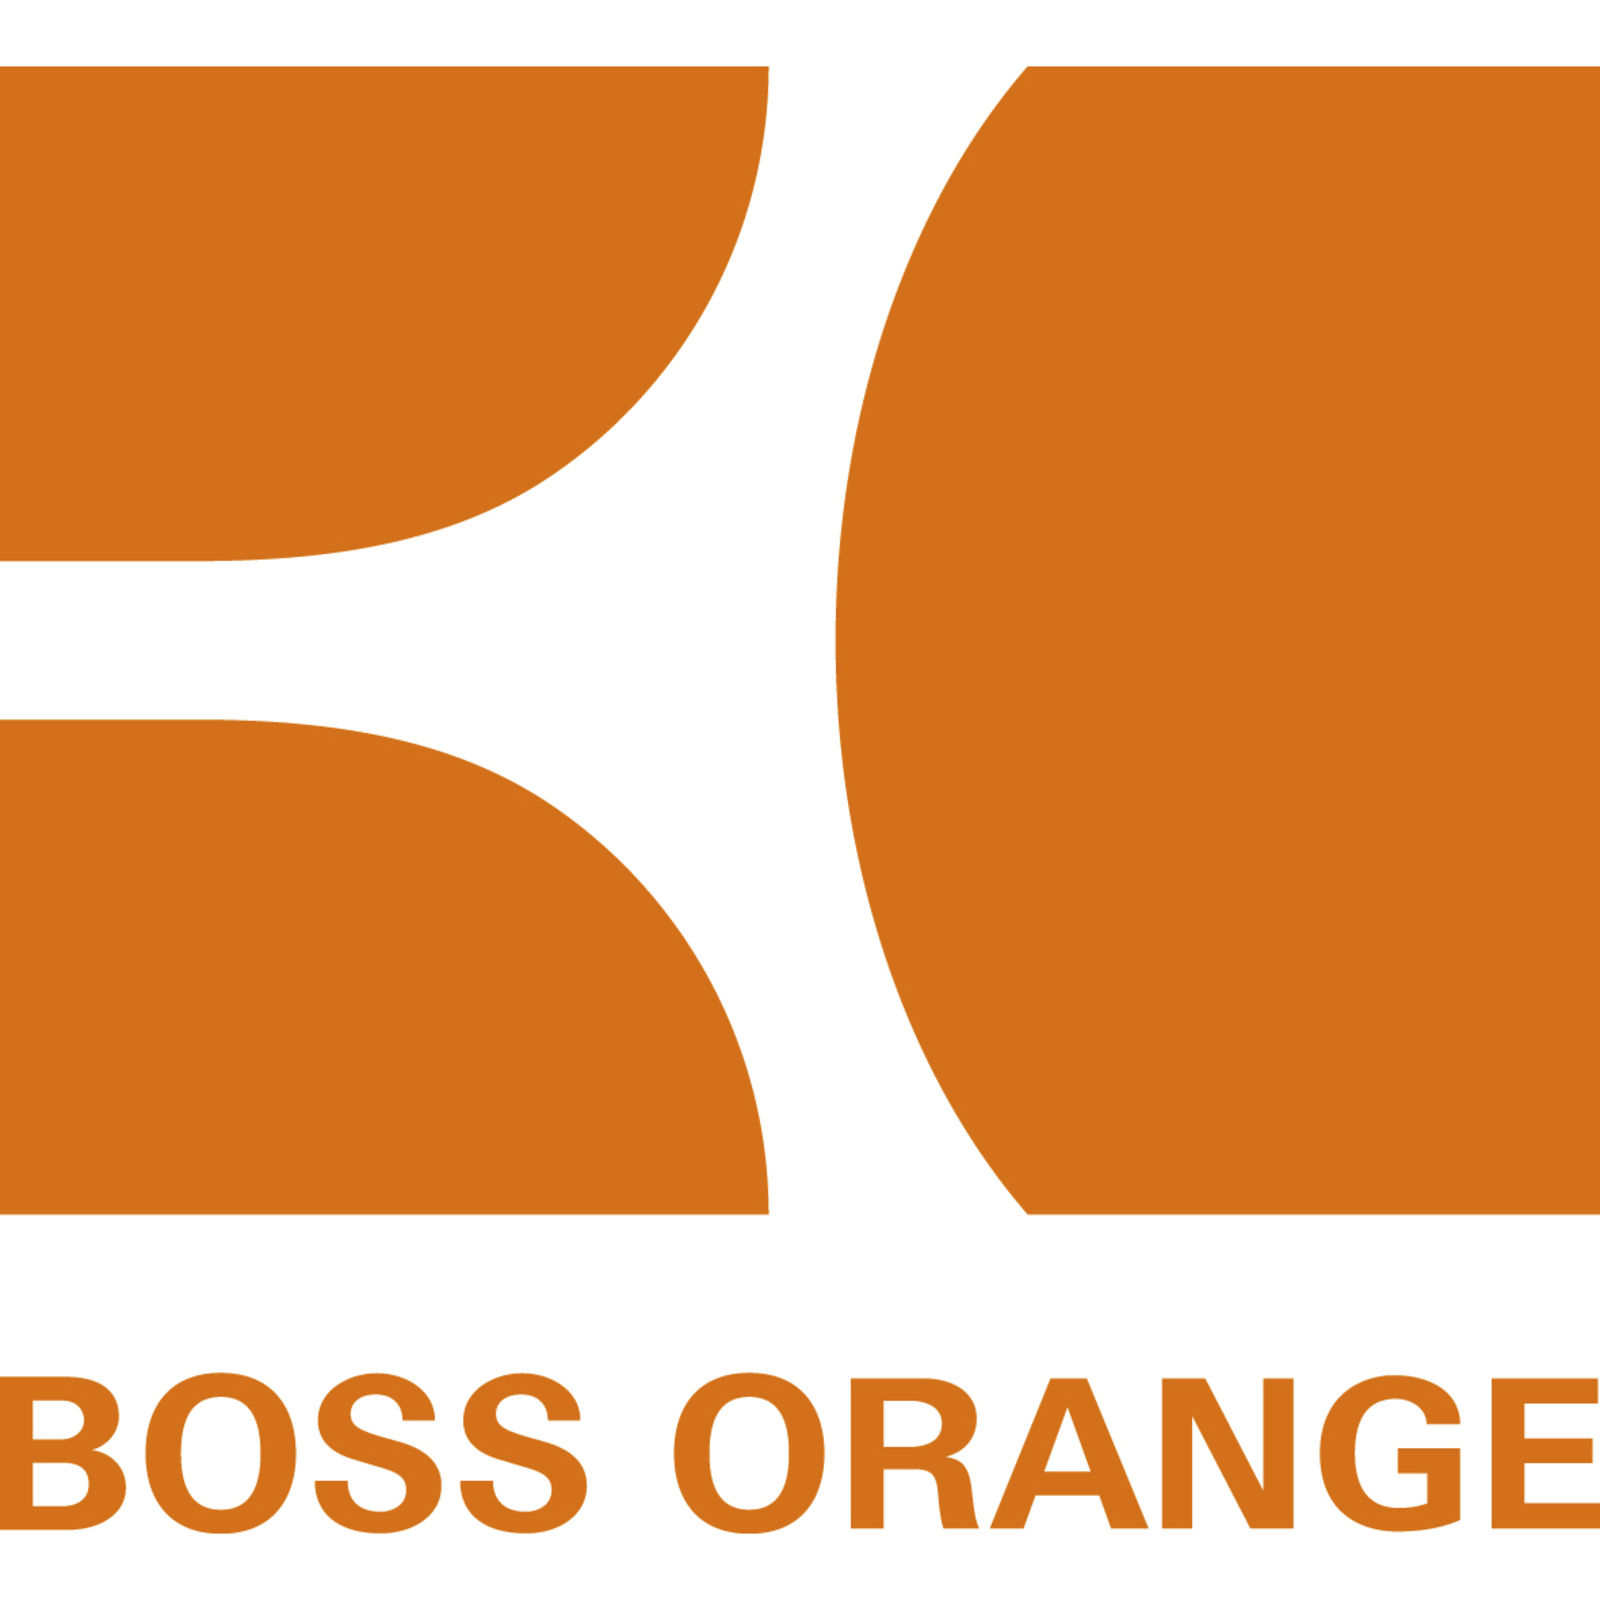 BOSS ORANGE Eyewear (Bild 1)